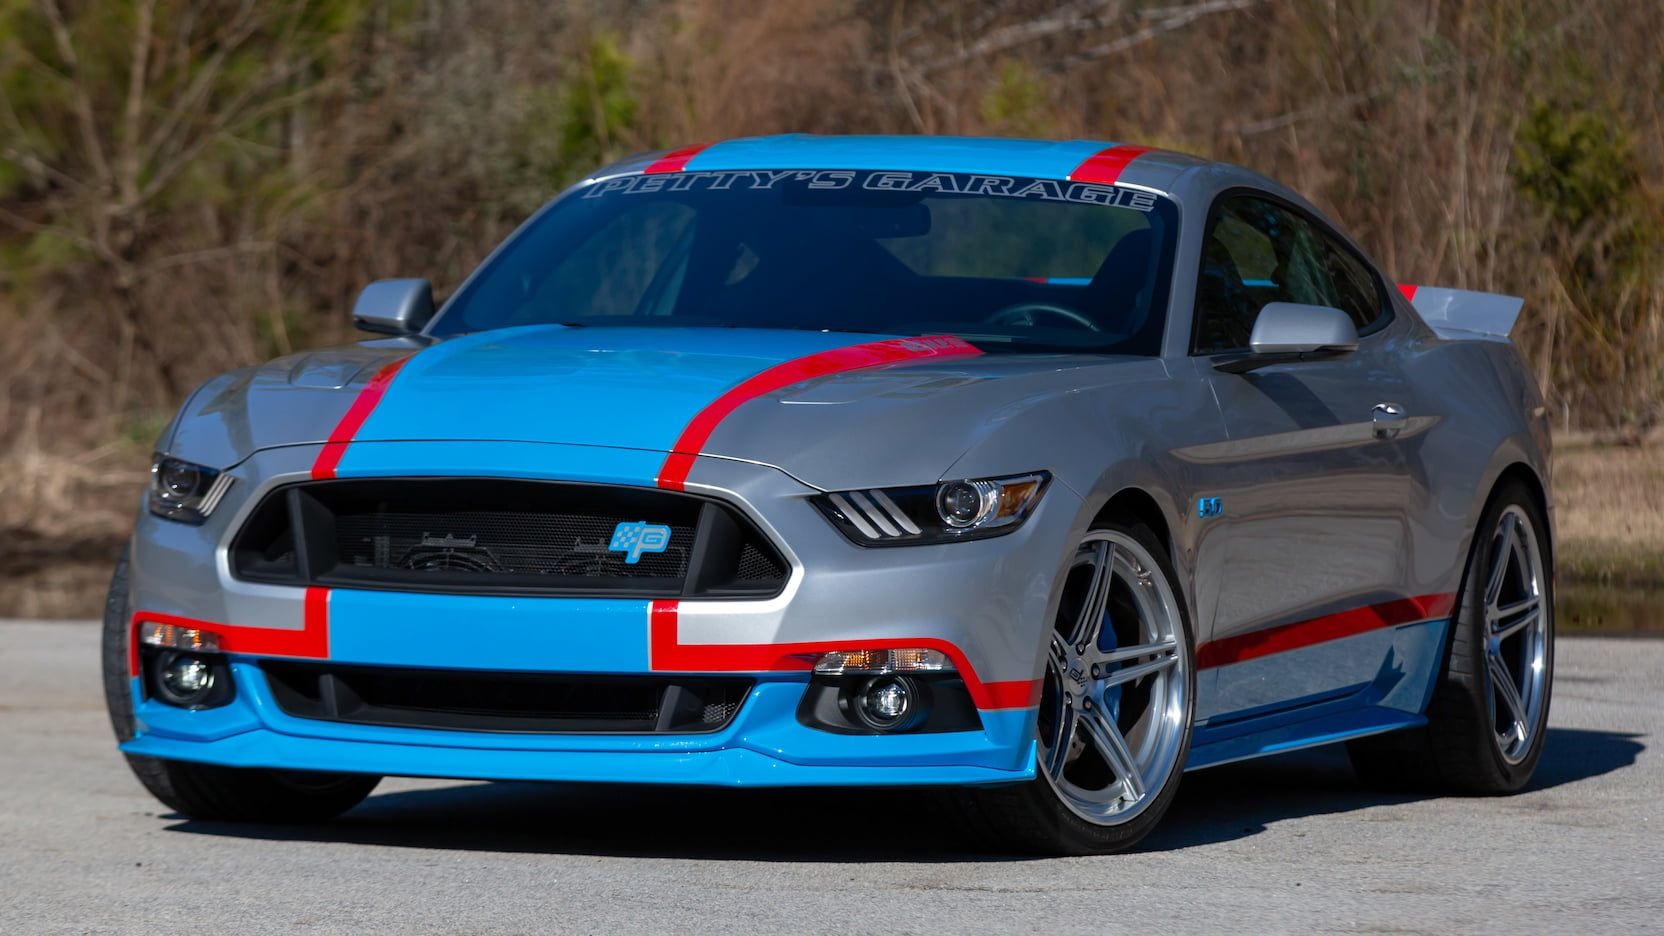 Ford Mustang Nascar Edition